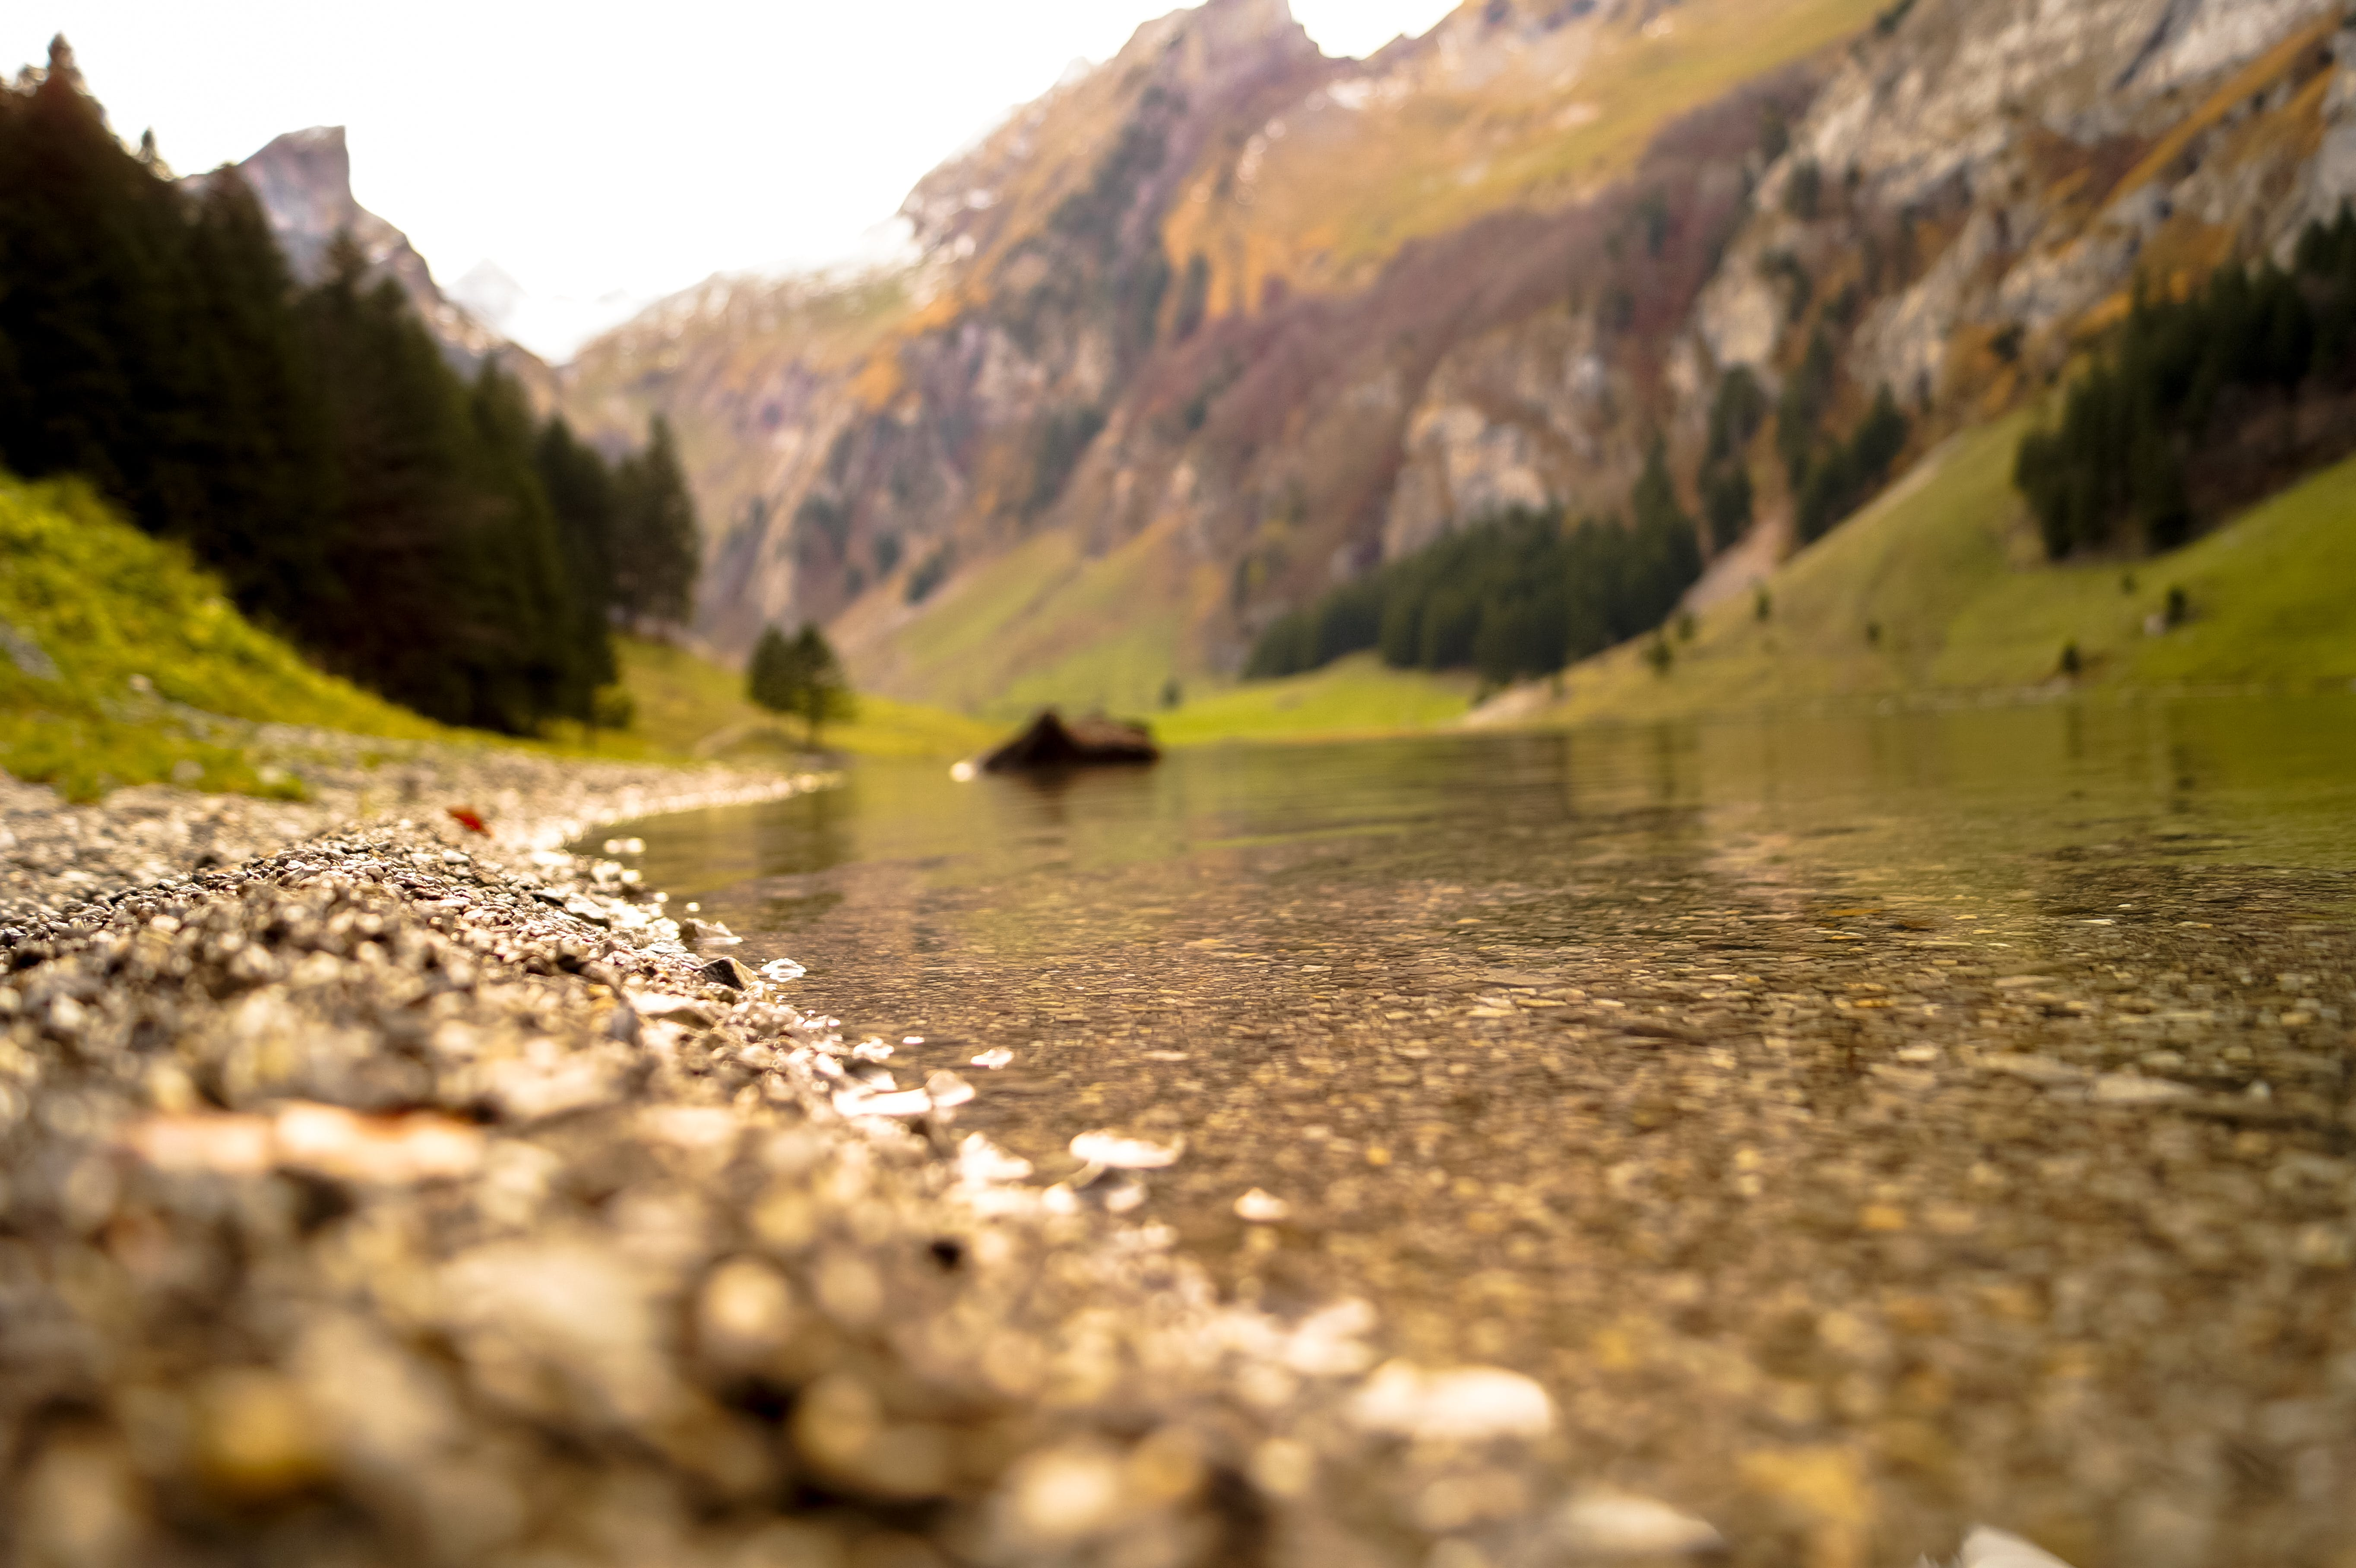 Shallow Focus Photography of Body of Water Near Mountain